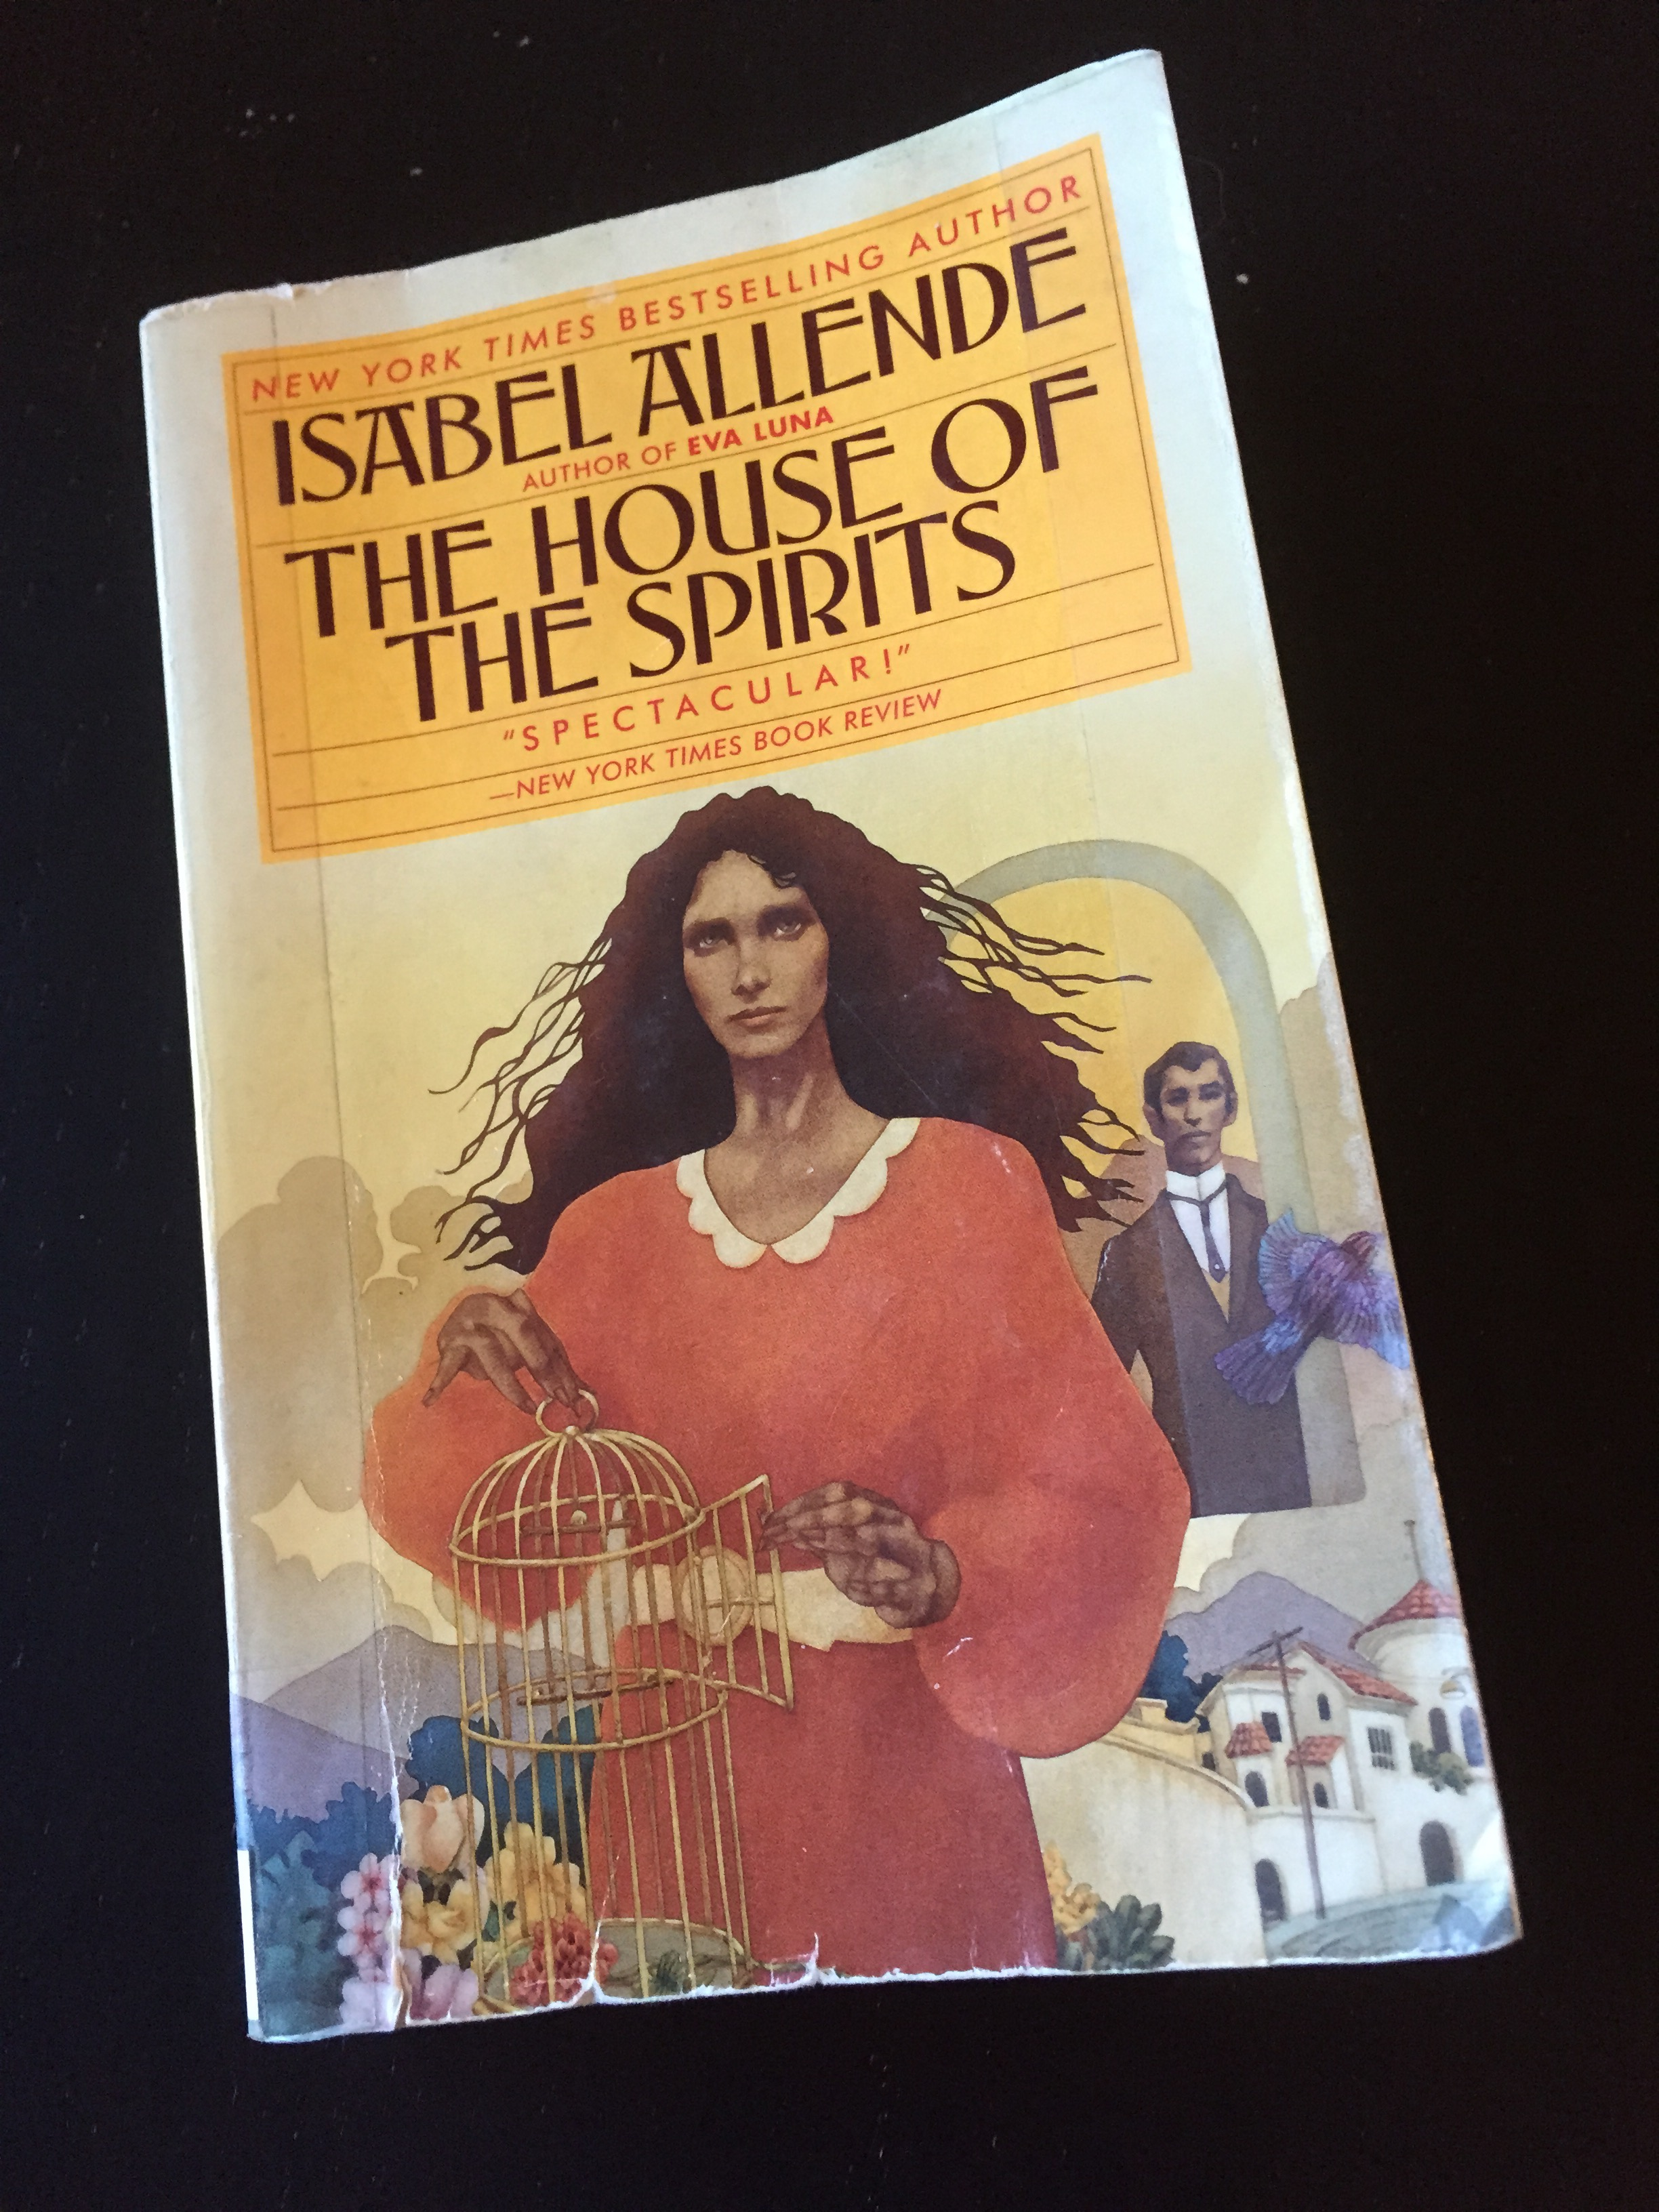 the complexities of human society as presented in the house of spirits by isabel allende essay Jane wong's poems can be found in best american poetry 2015, american poetry review, third coast, jubilat, and others a kundiman fellow, she is the recipient of a pushcart prize and fellowships from the us fulbright program, the fine arts work center, hedgebrook, and bread loaf.